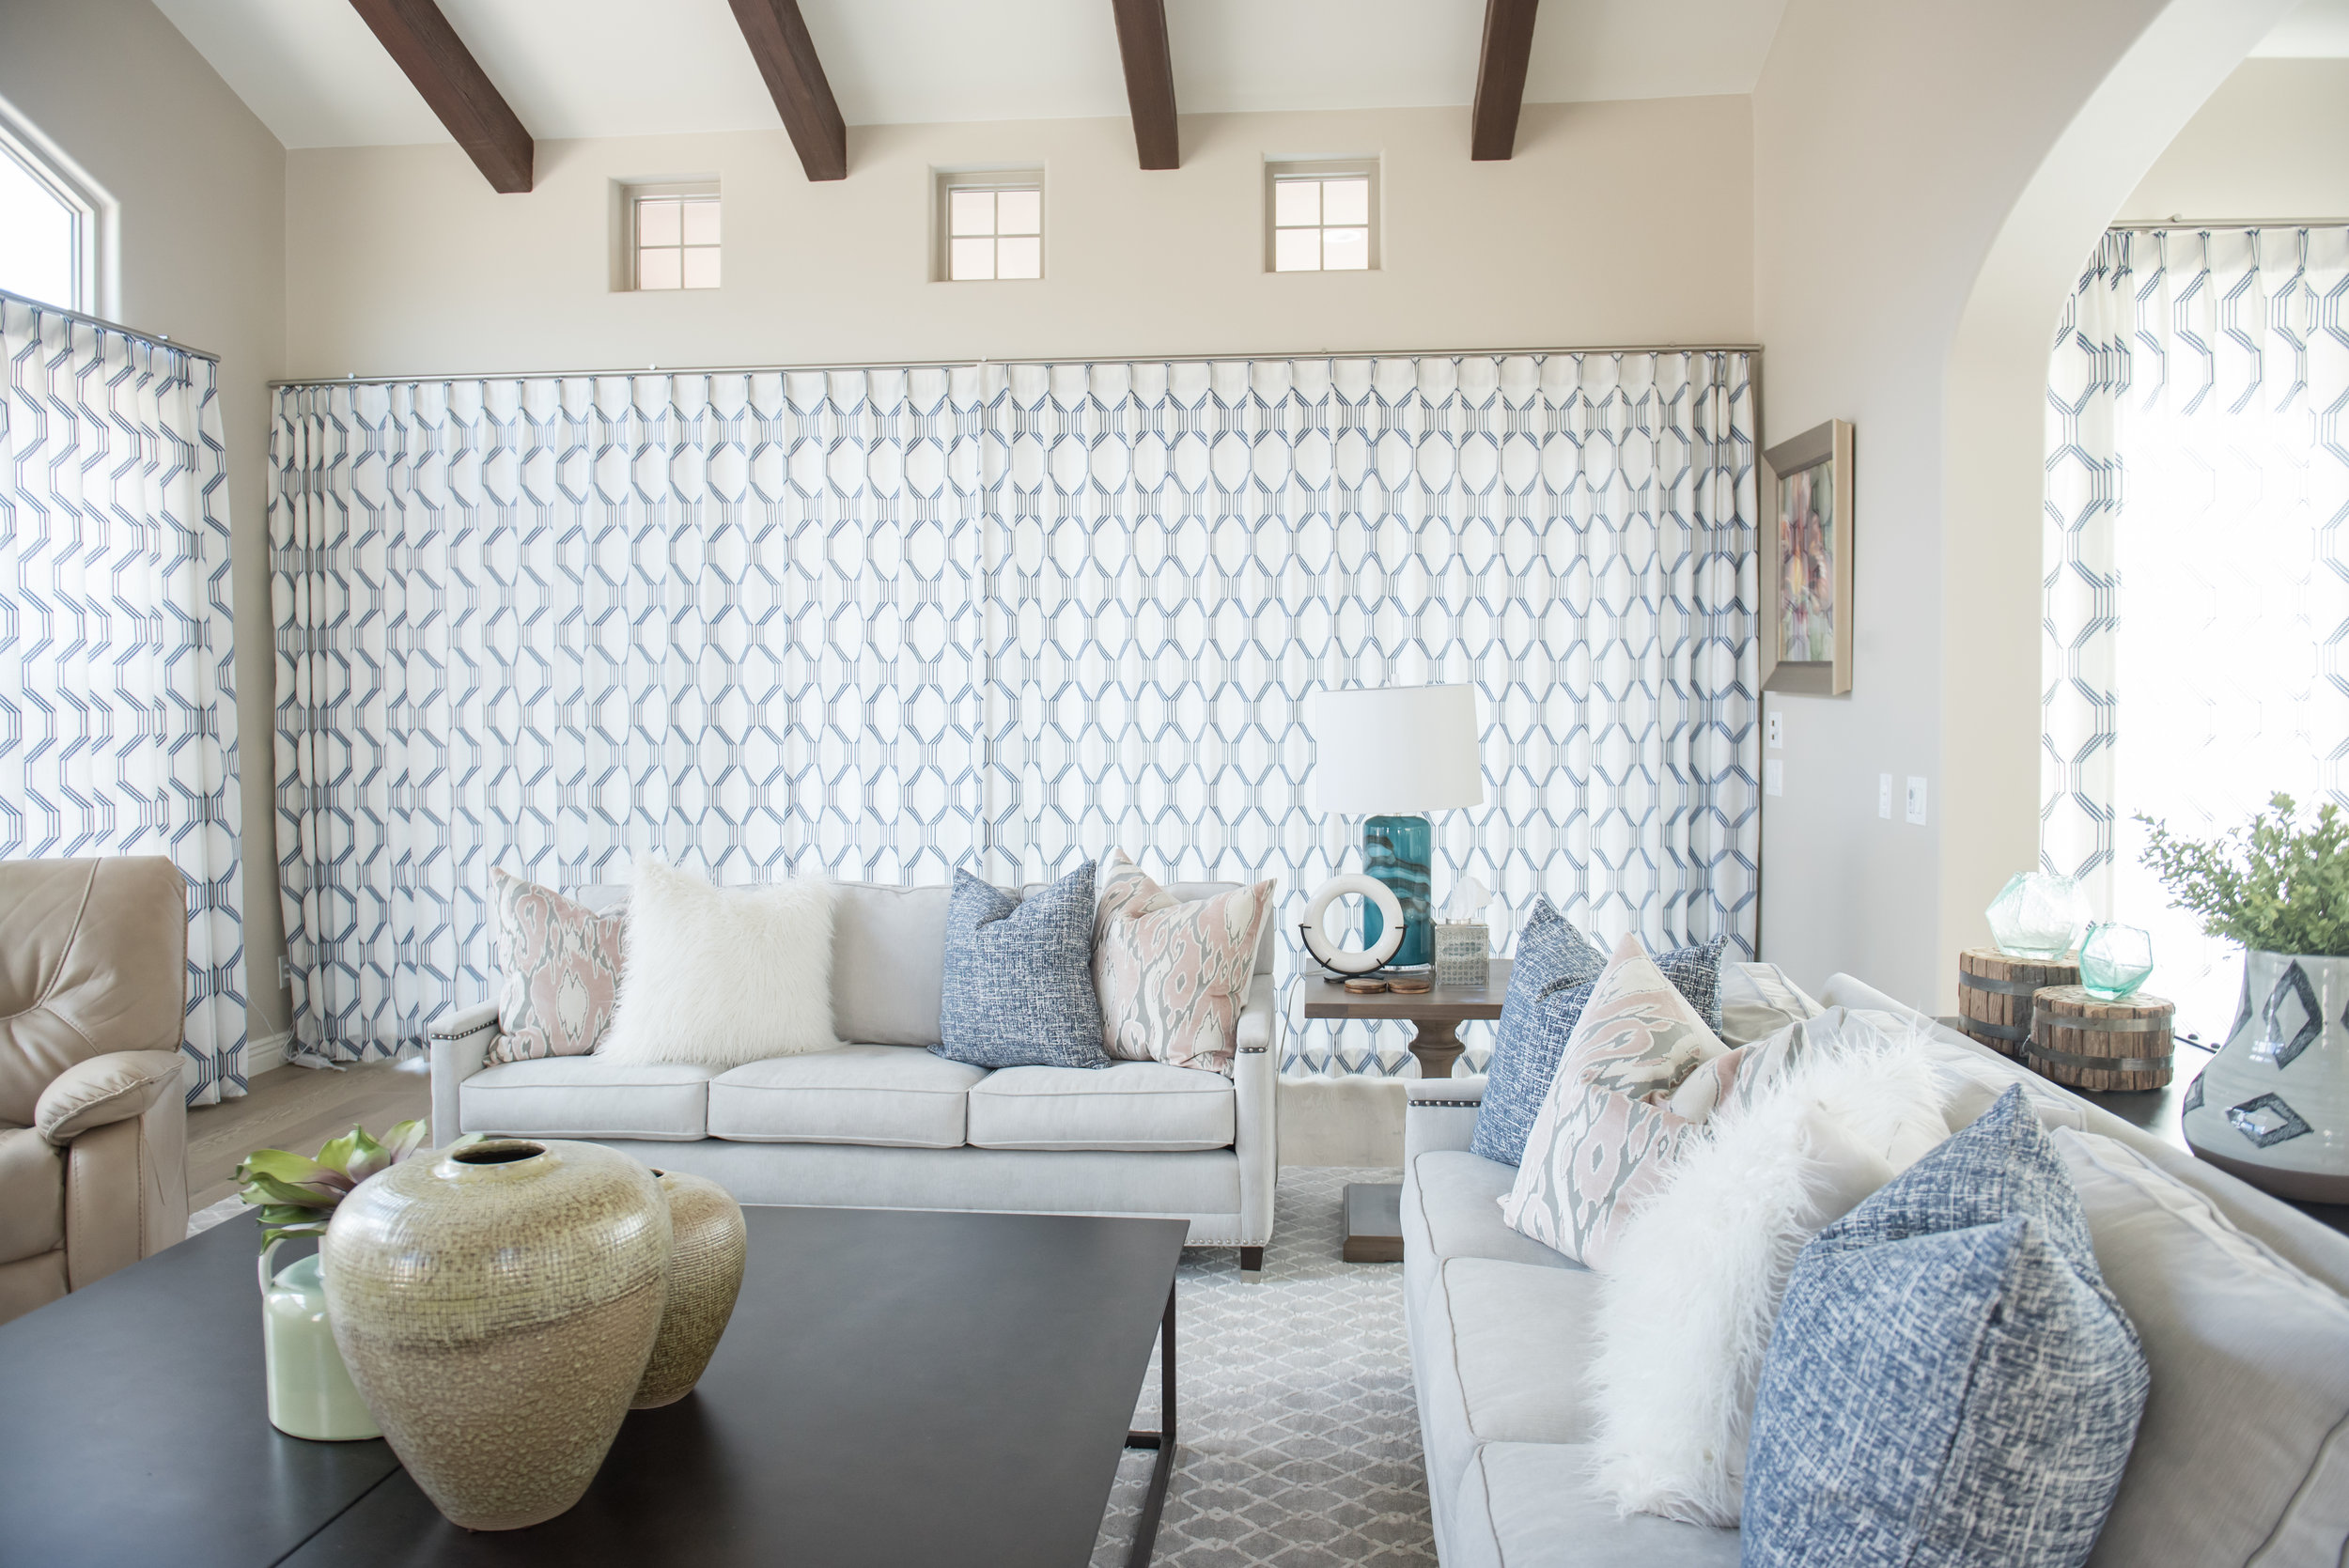 Custom Window Treatments, Cushions, Pillows, and so much more by Window to Design.